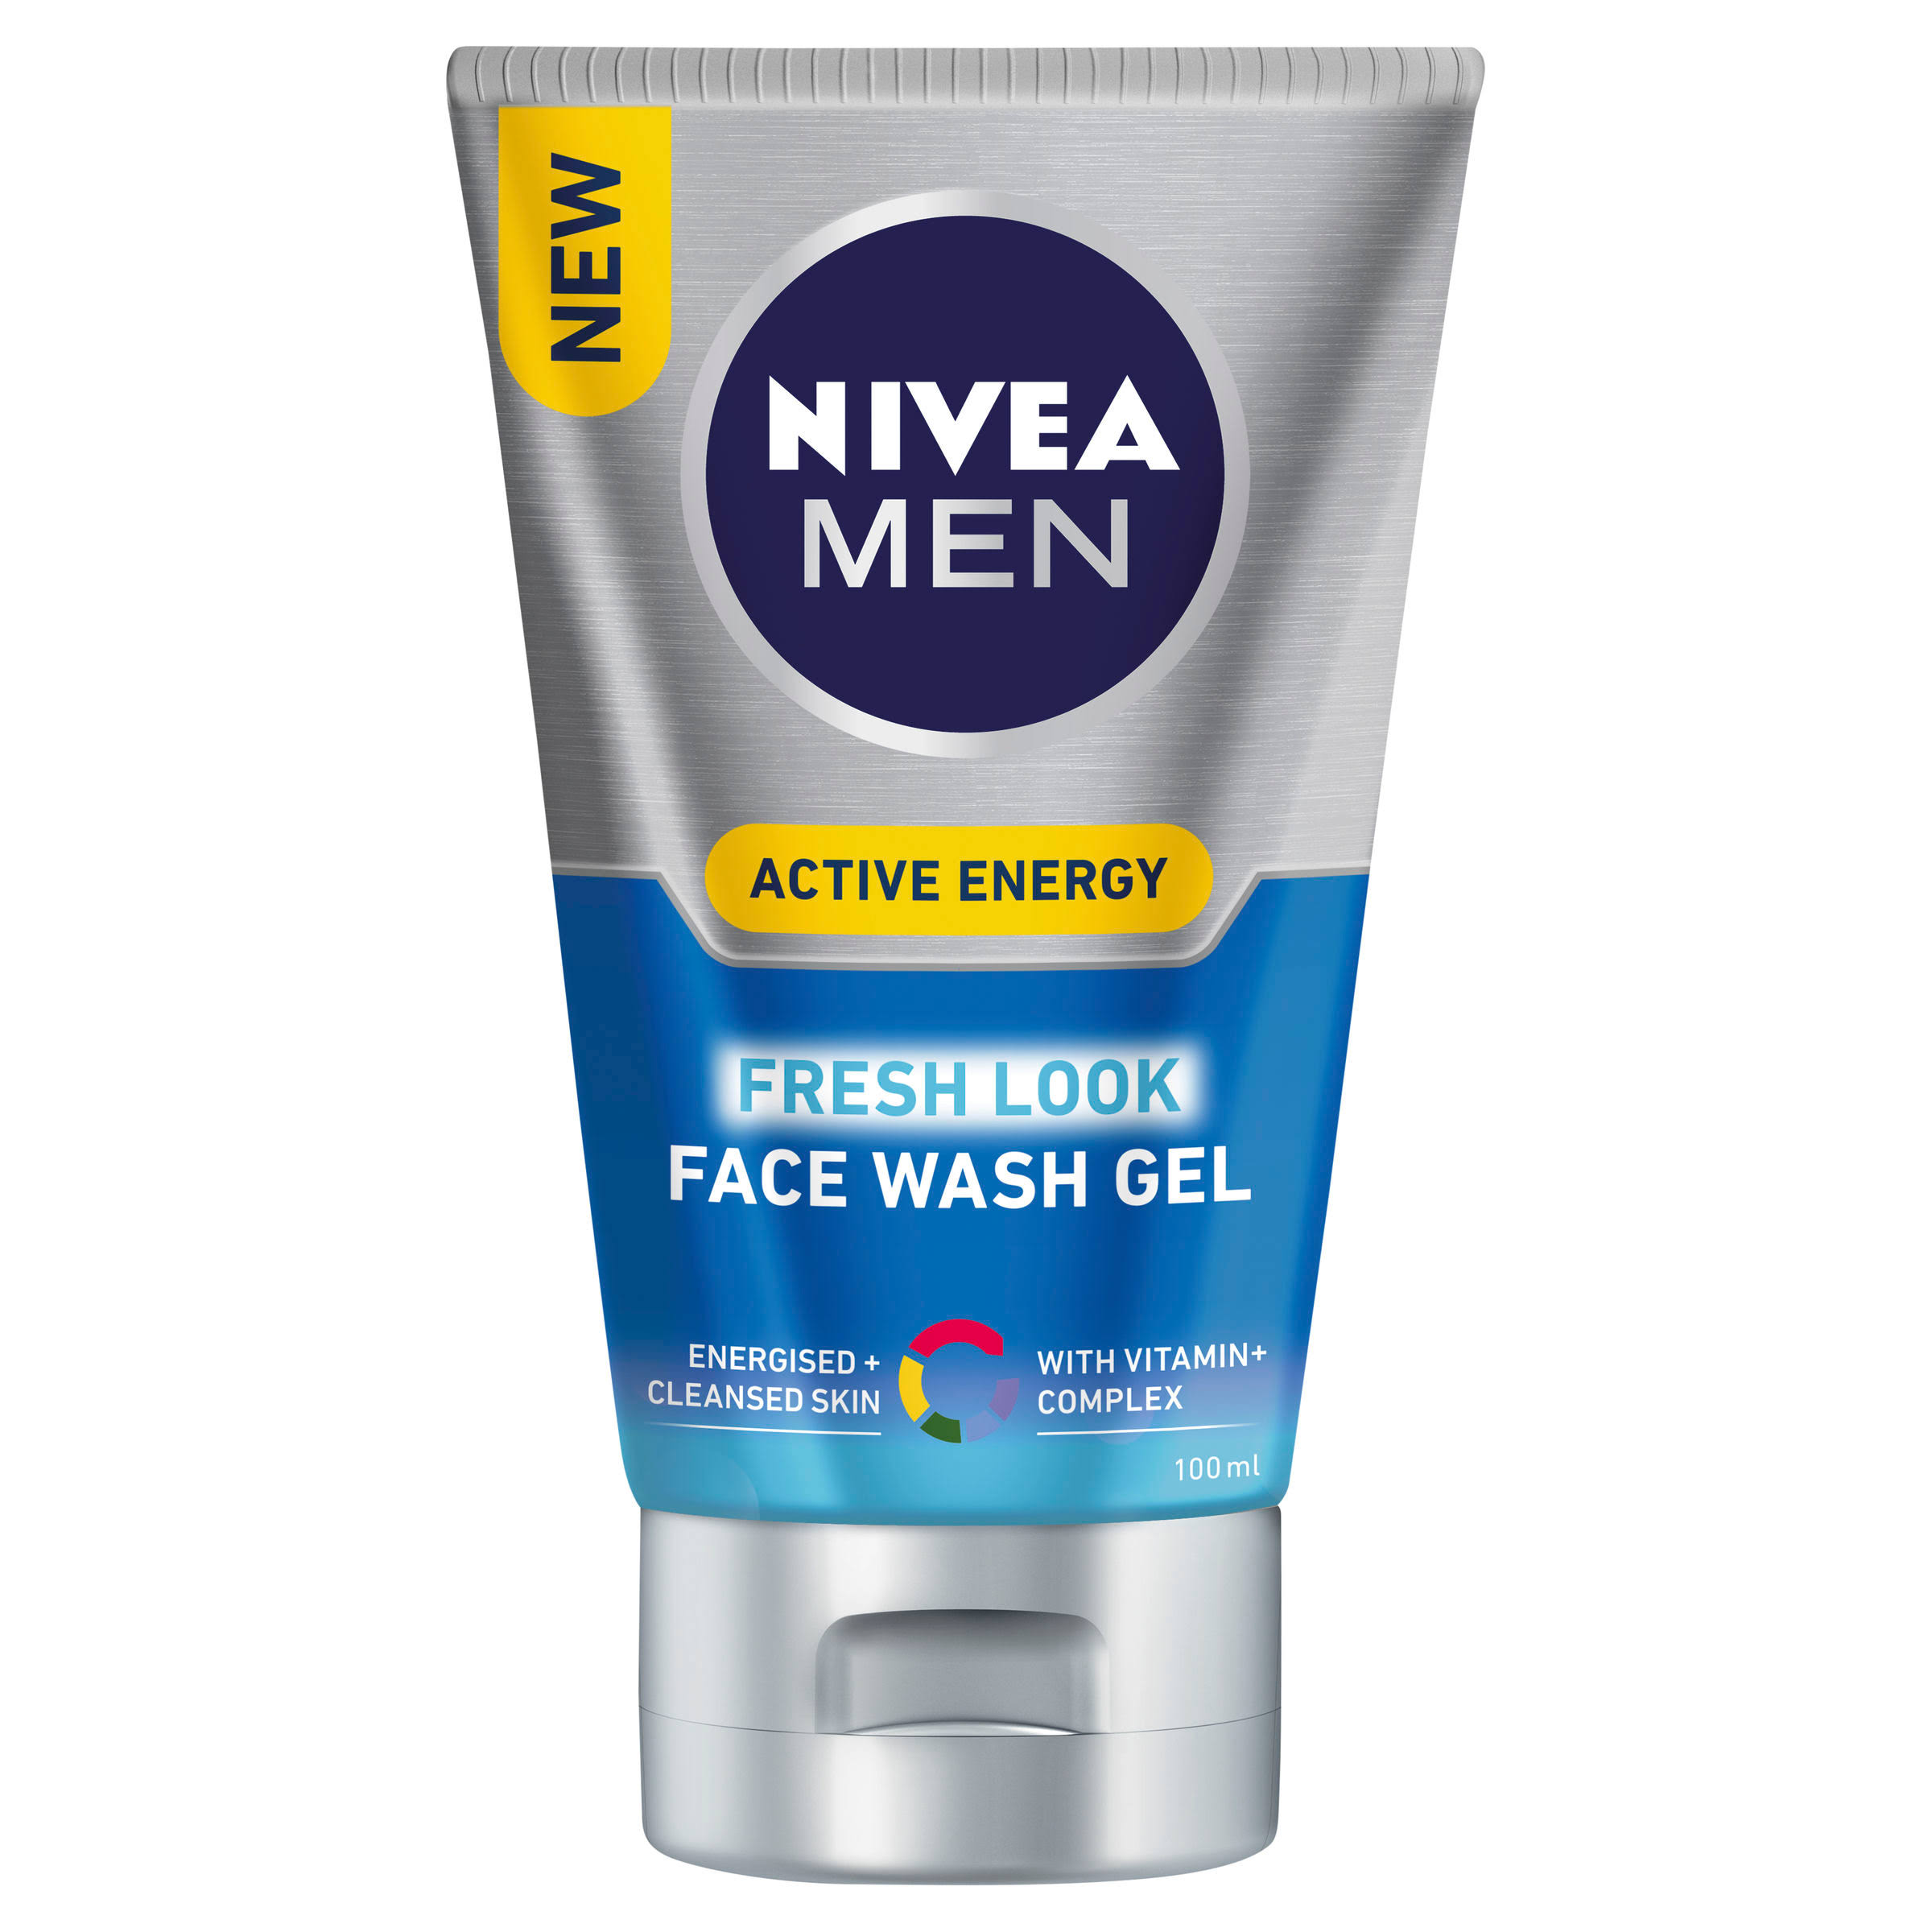 Nivea Men Active Energy Face Wash Gel - 100ml